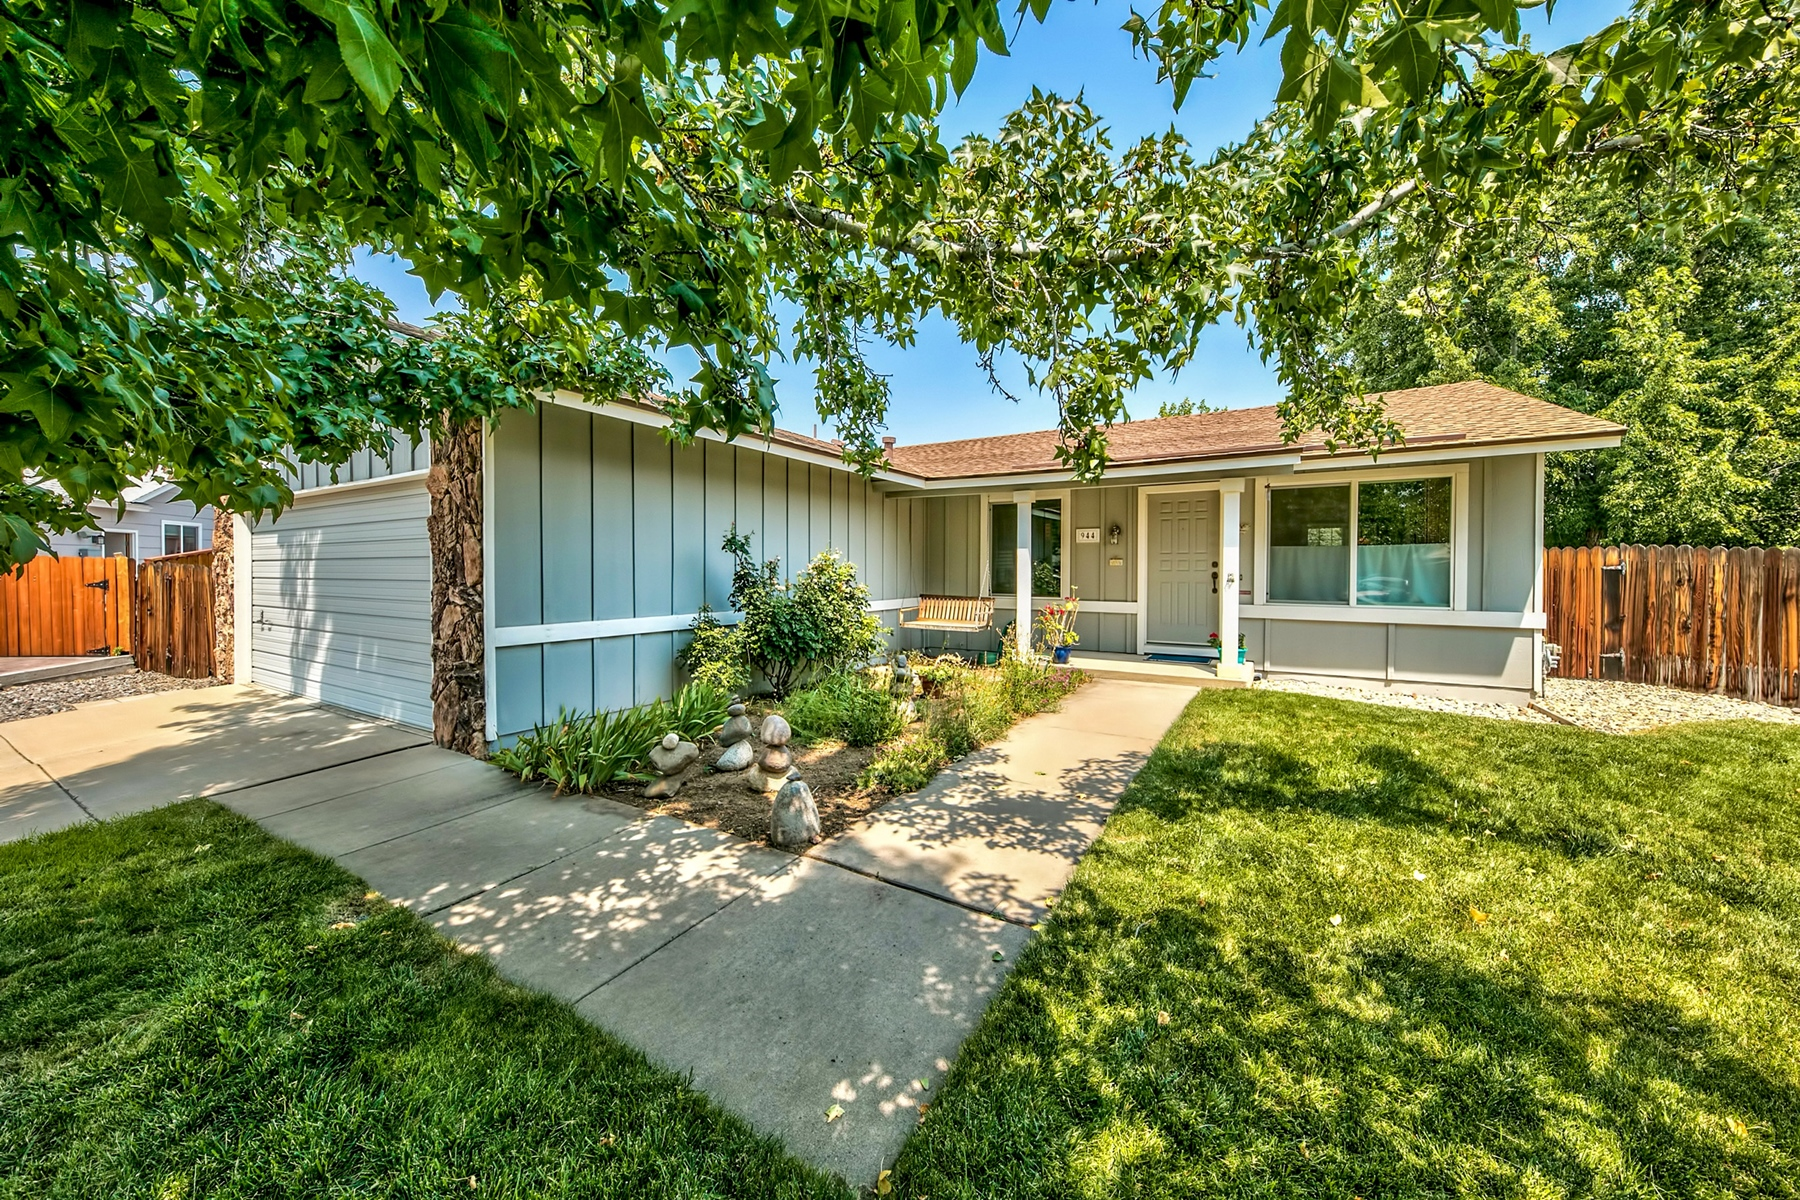 Single Family Home for Active at 944 Supreme Court, Sparks Nevada, 89434 944 Supreme Court Sparks, Nevada 89434 United States